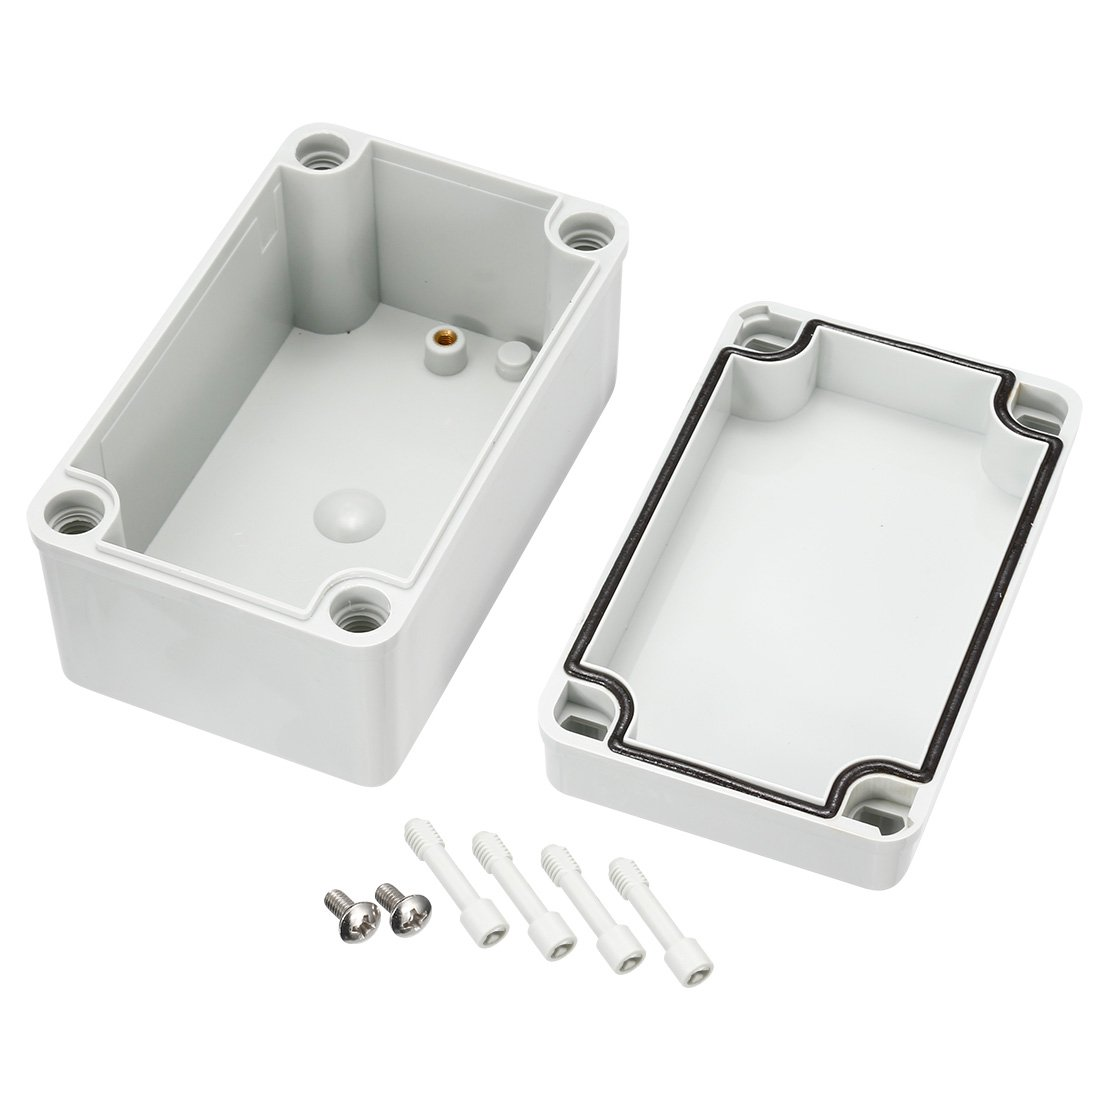 uxcell 7.87x4.72x4.45 ABS Junction Box Universal Project Enclosure Gray a18013000ux0106 200mmx120mmx113mm